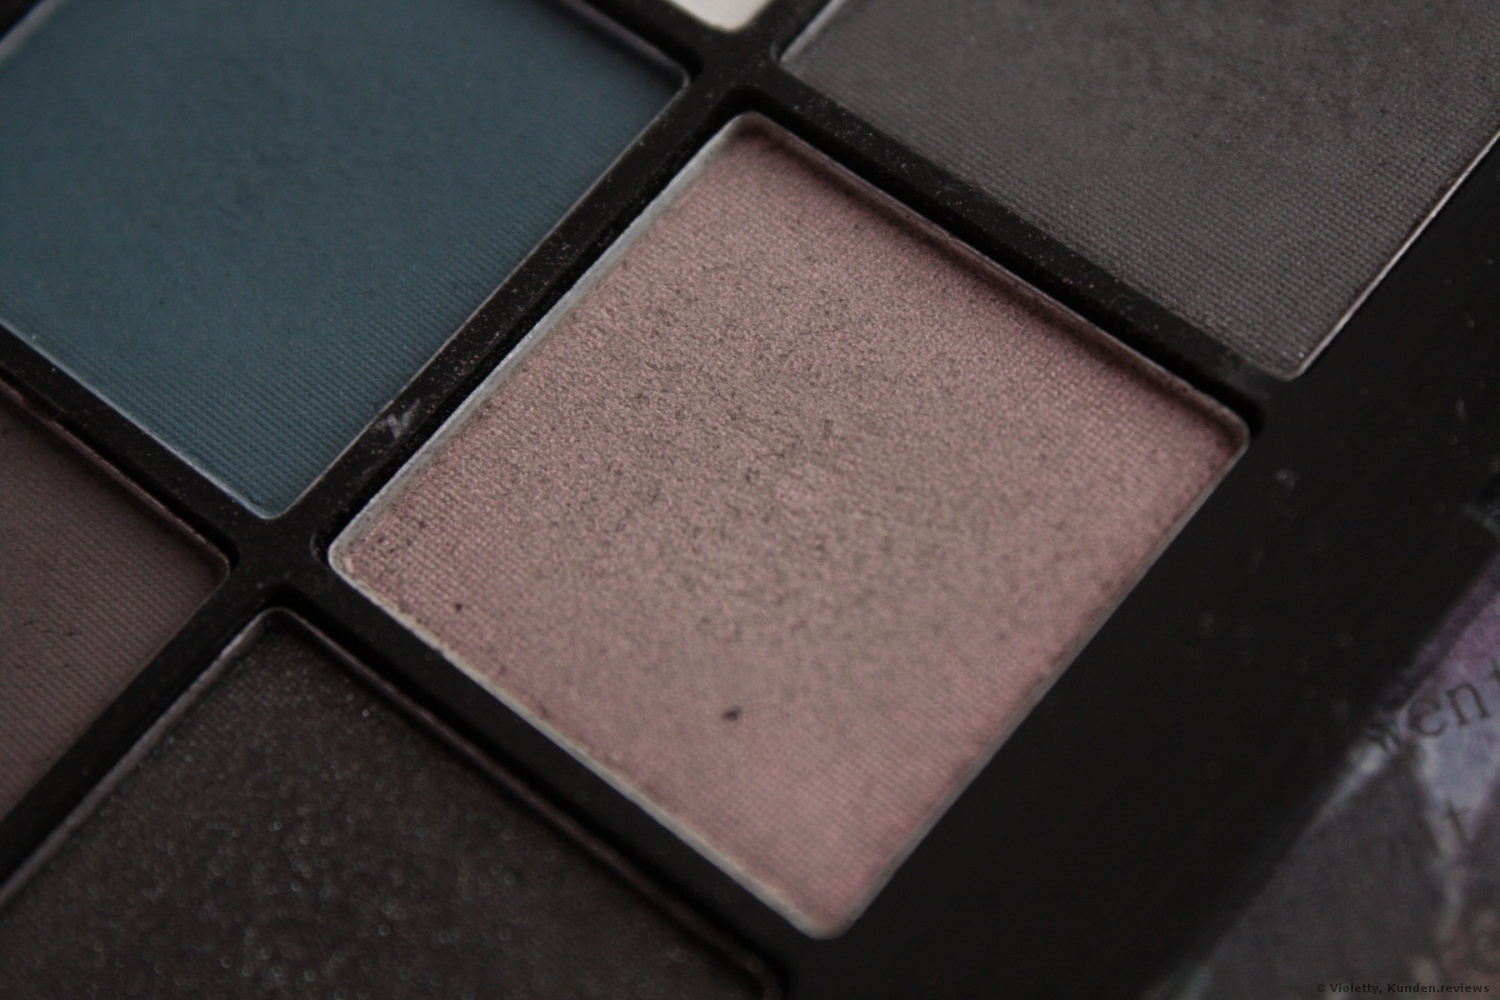 NYX Prof. Makeup Perfect Filter Shadow Palette #7